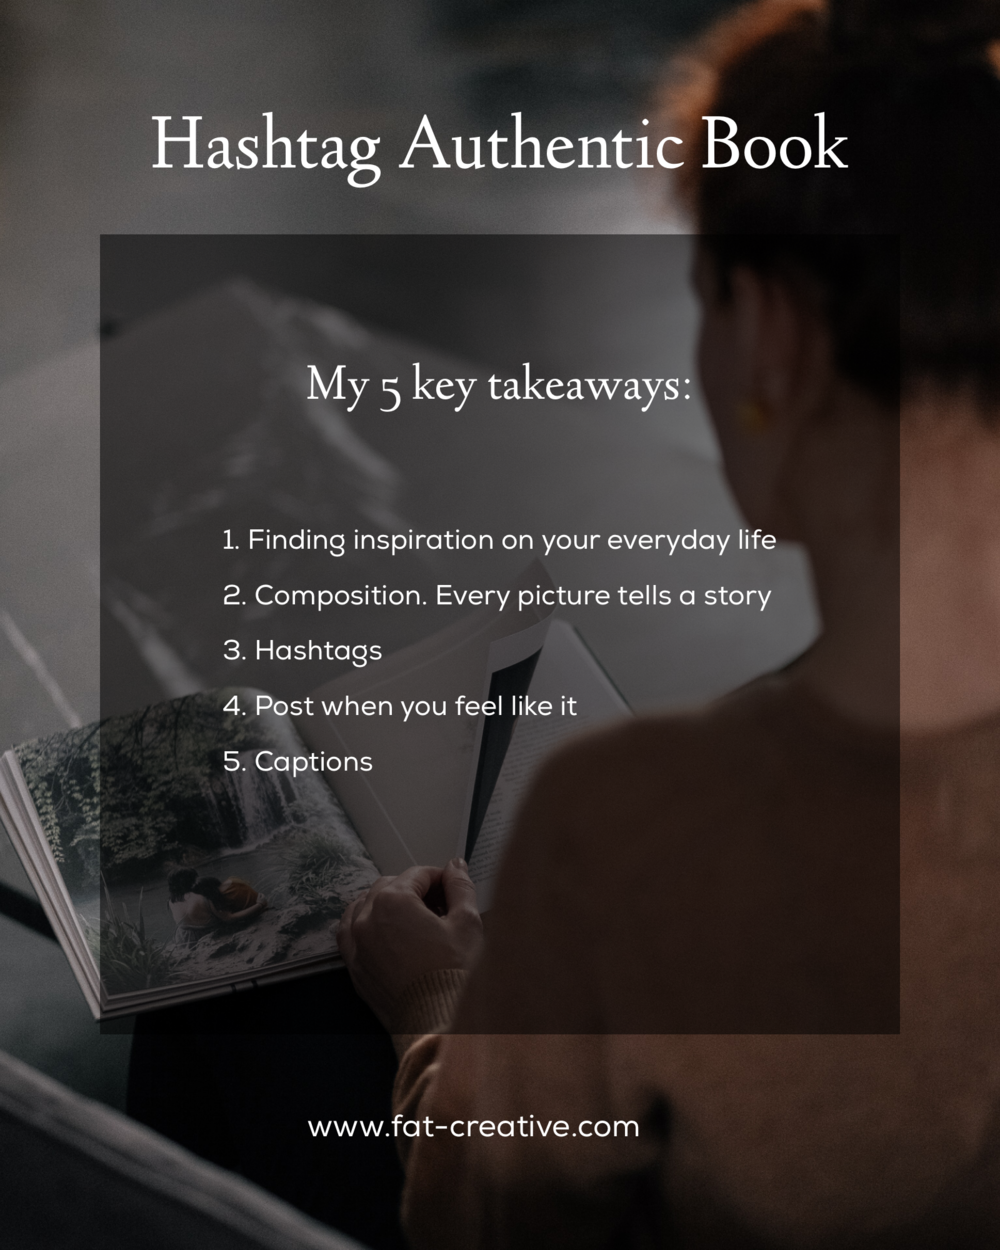 Hashtag-Authentic-Book-5-key-takeaways.png